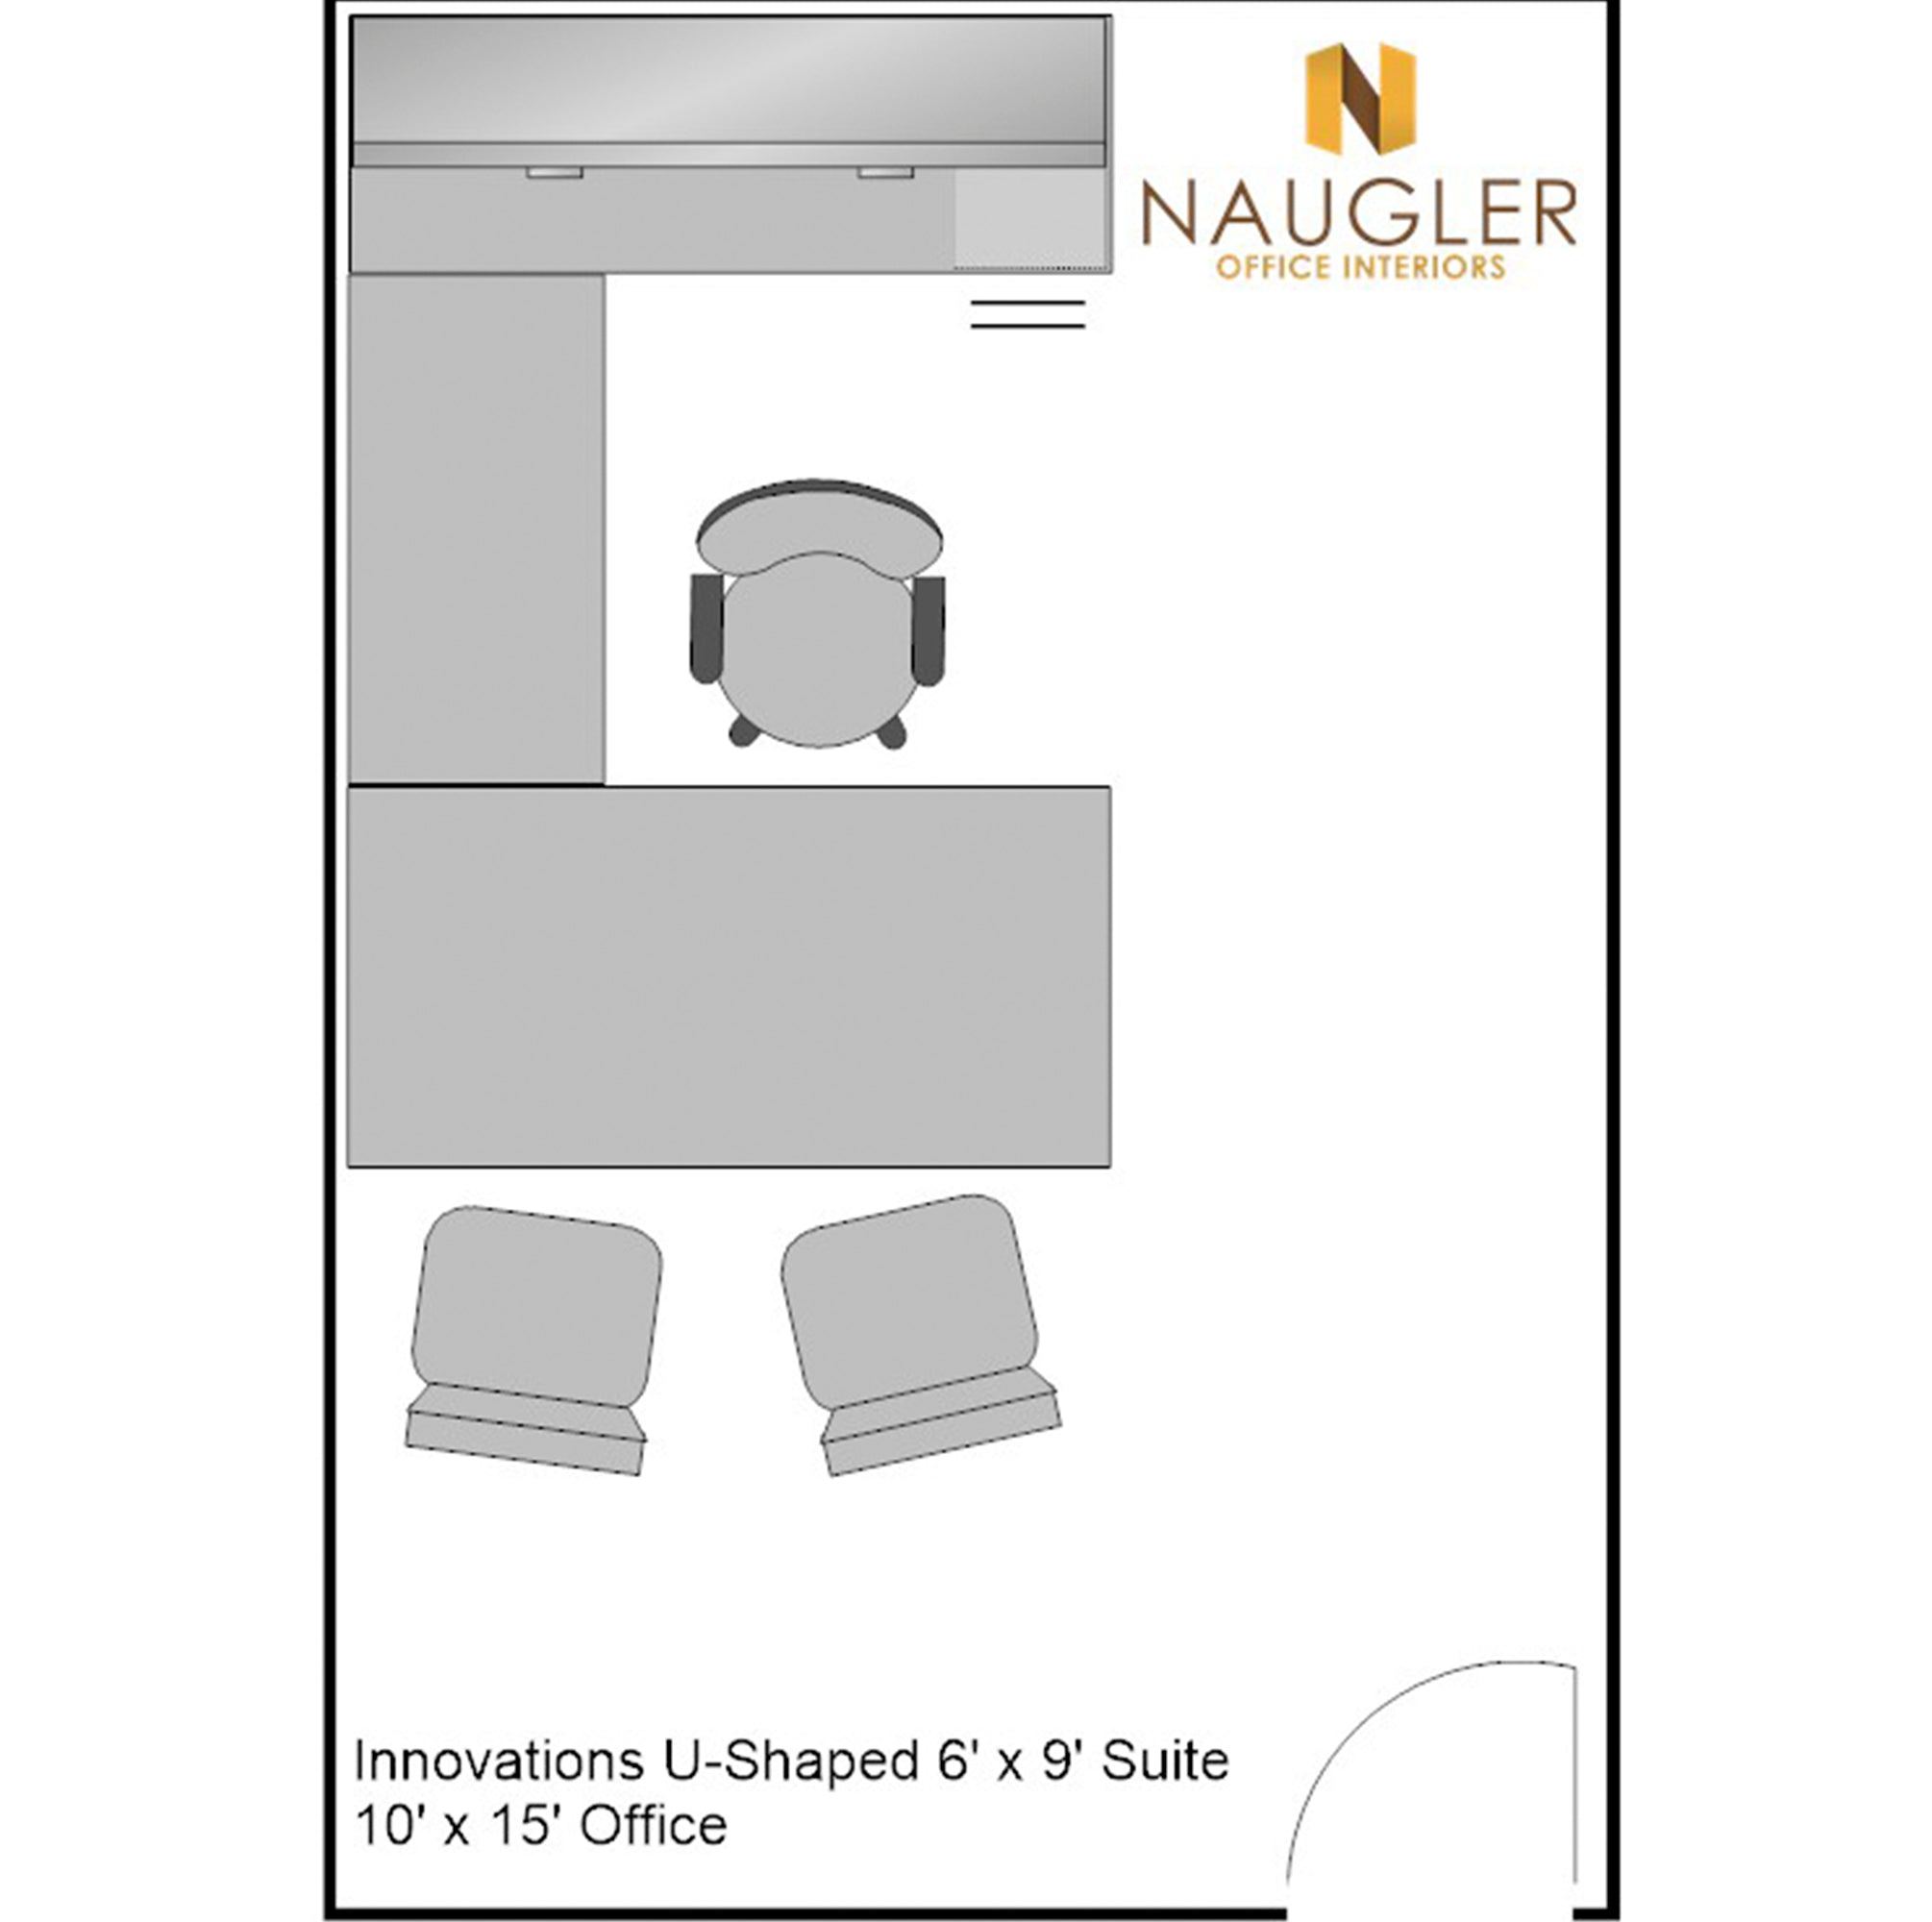 Innovations U-Shaped 6' x 9' Suite